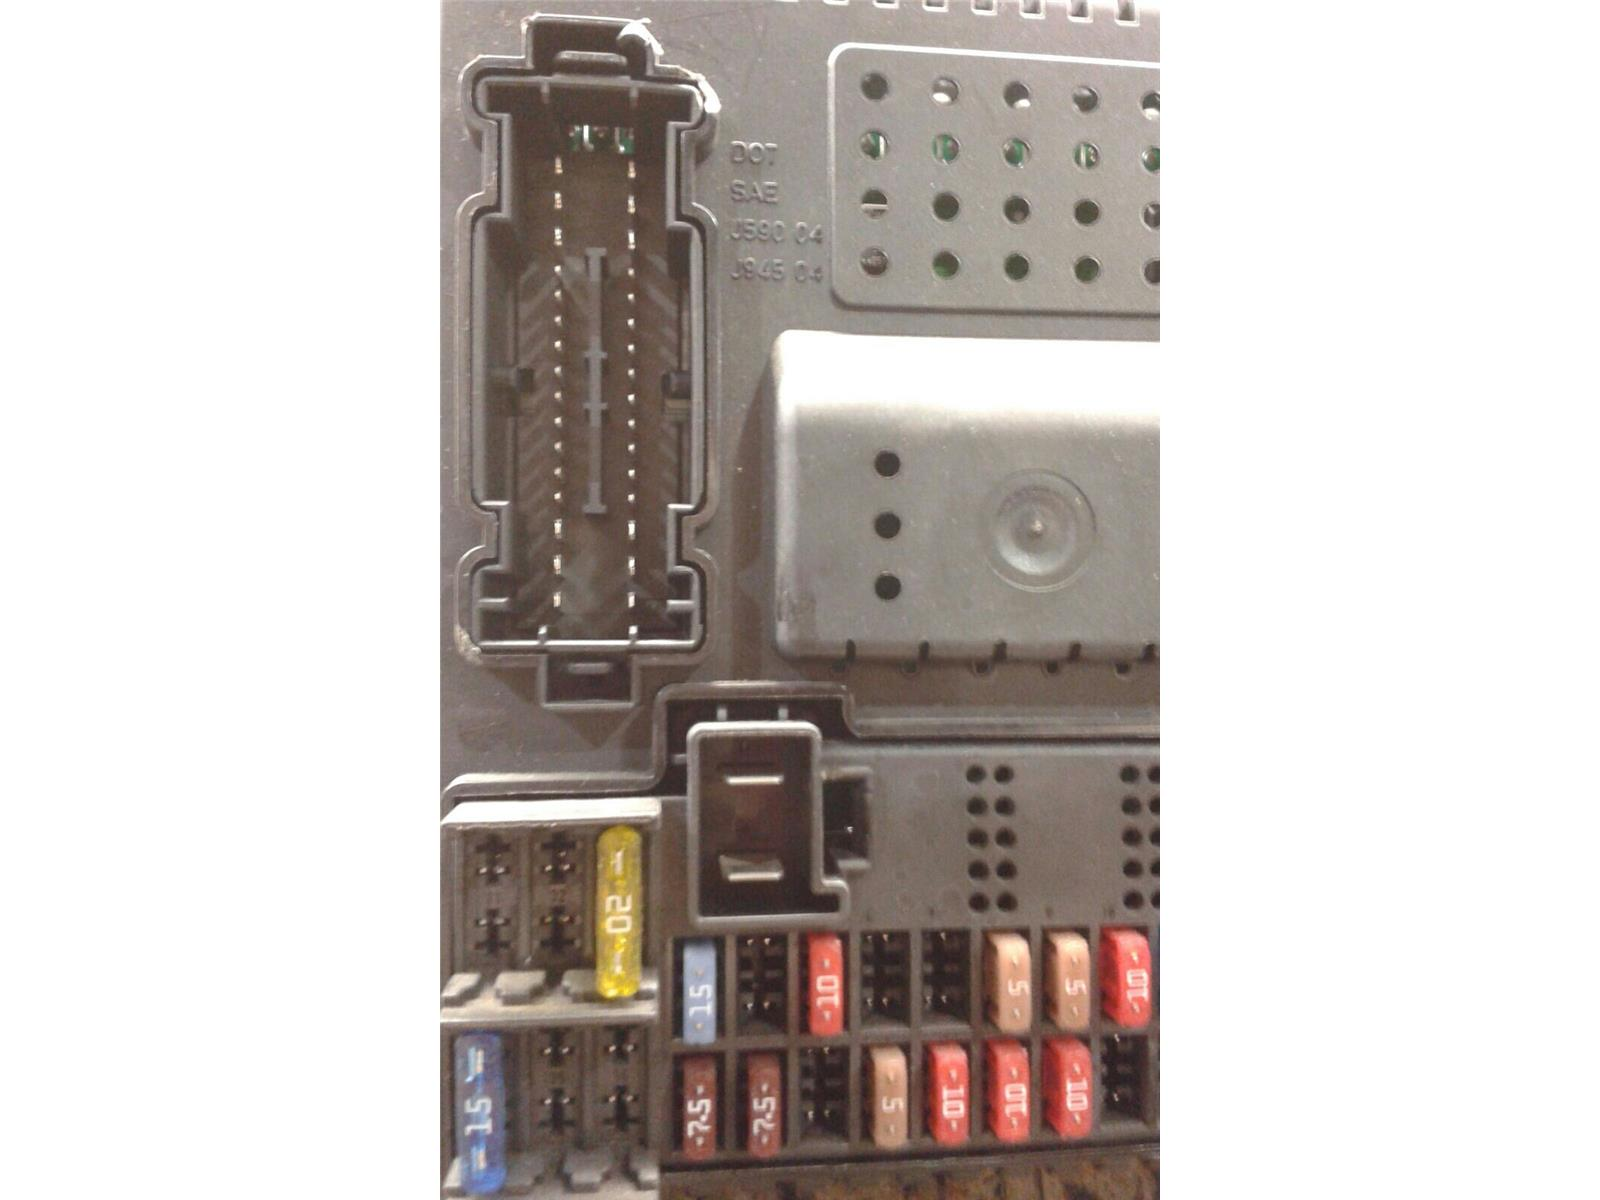 2016 Volvo Xc90 Fuse Box Diagram In 2002 To 2006 Diesel Automatic For Sale From